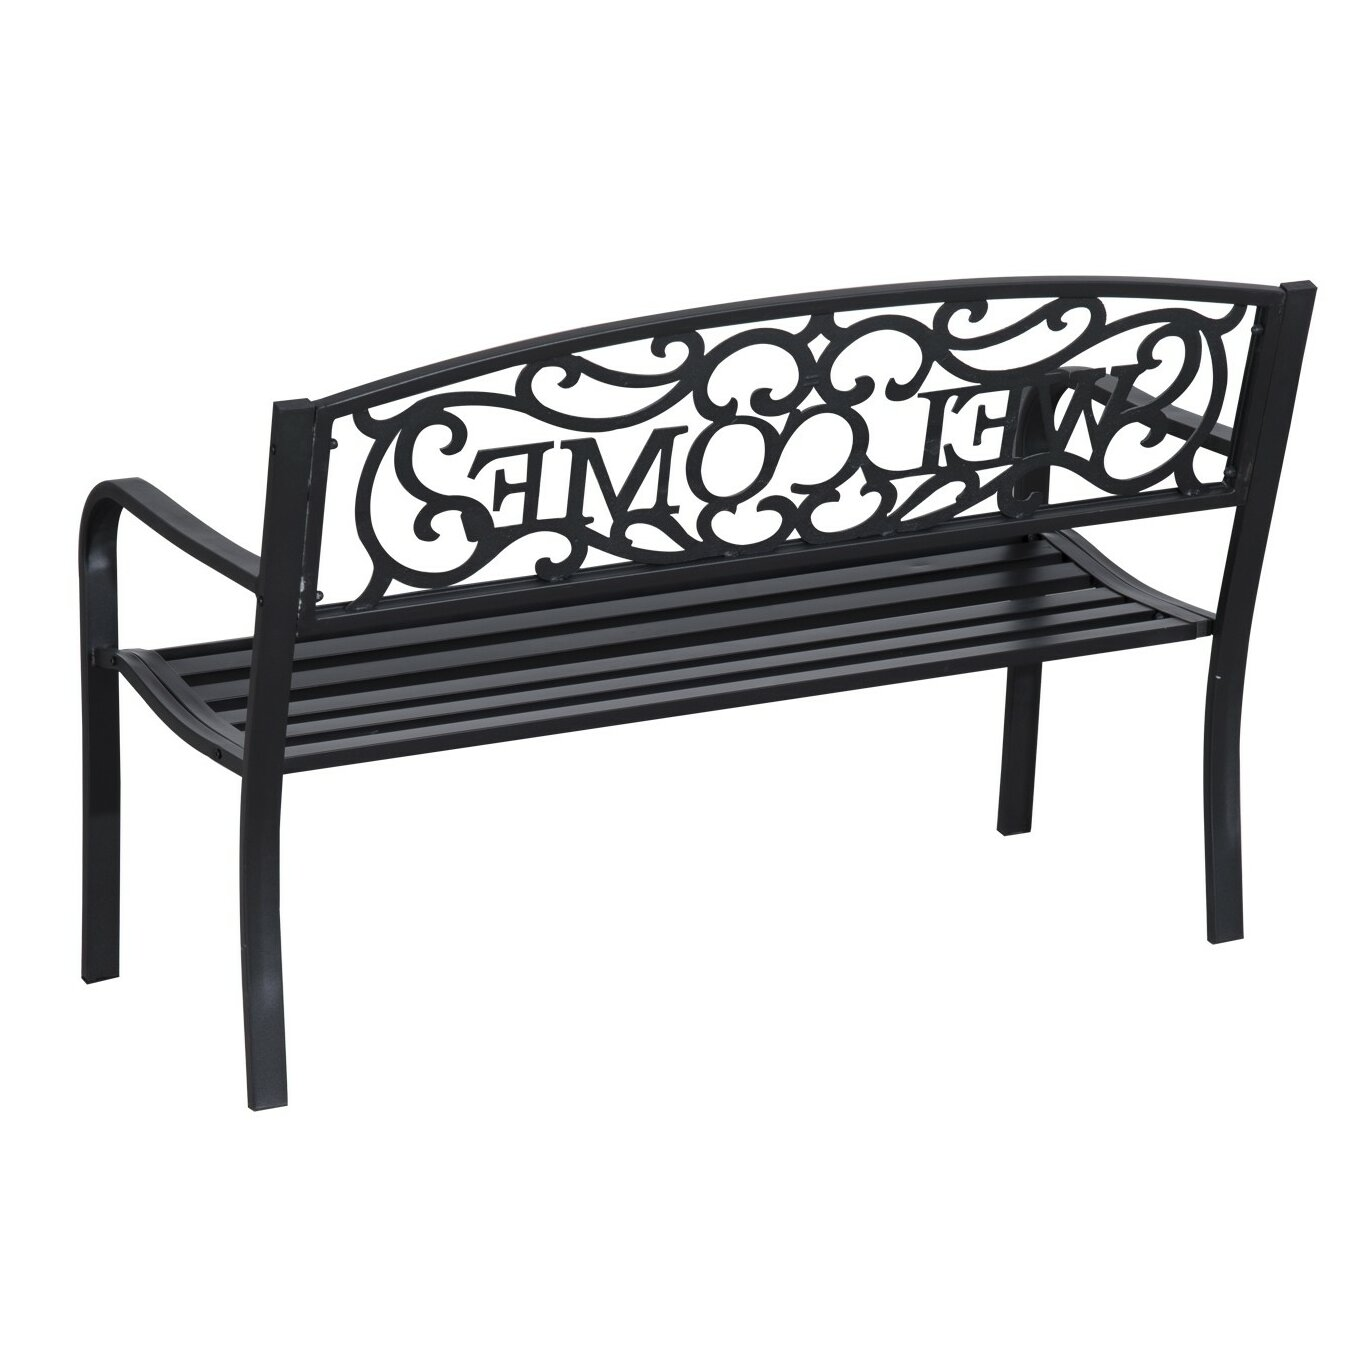 Outsunny welcome vines decorative steel garden bench reviews wayfair Decorative benches